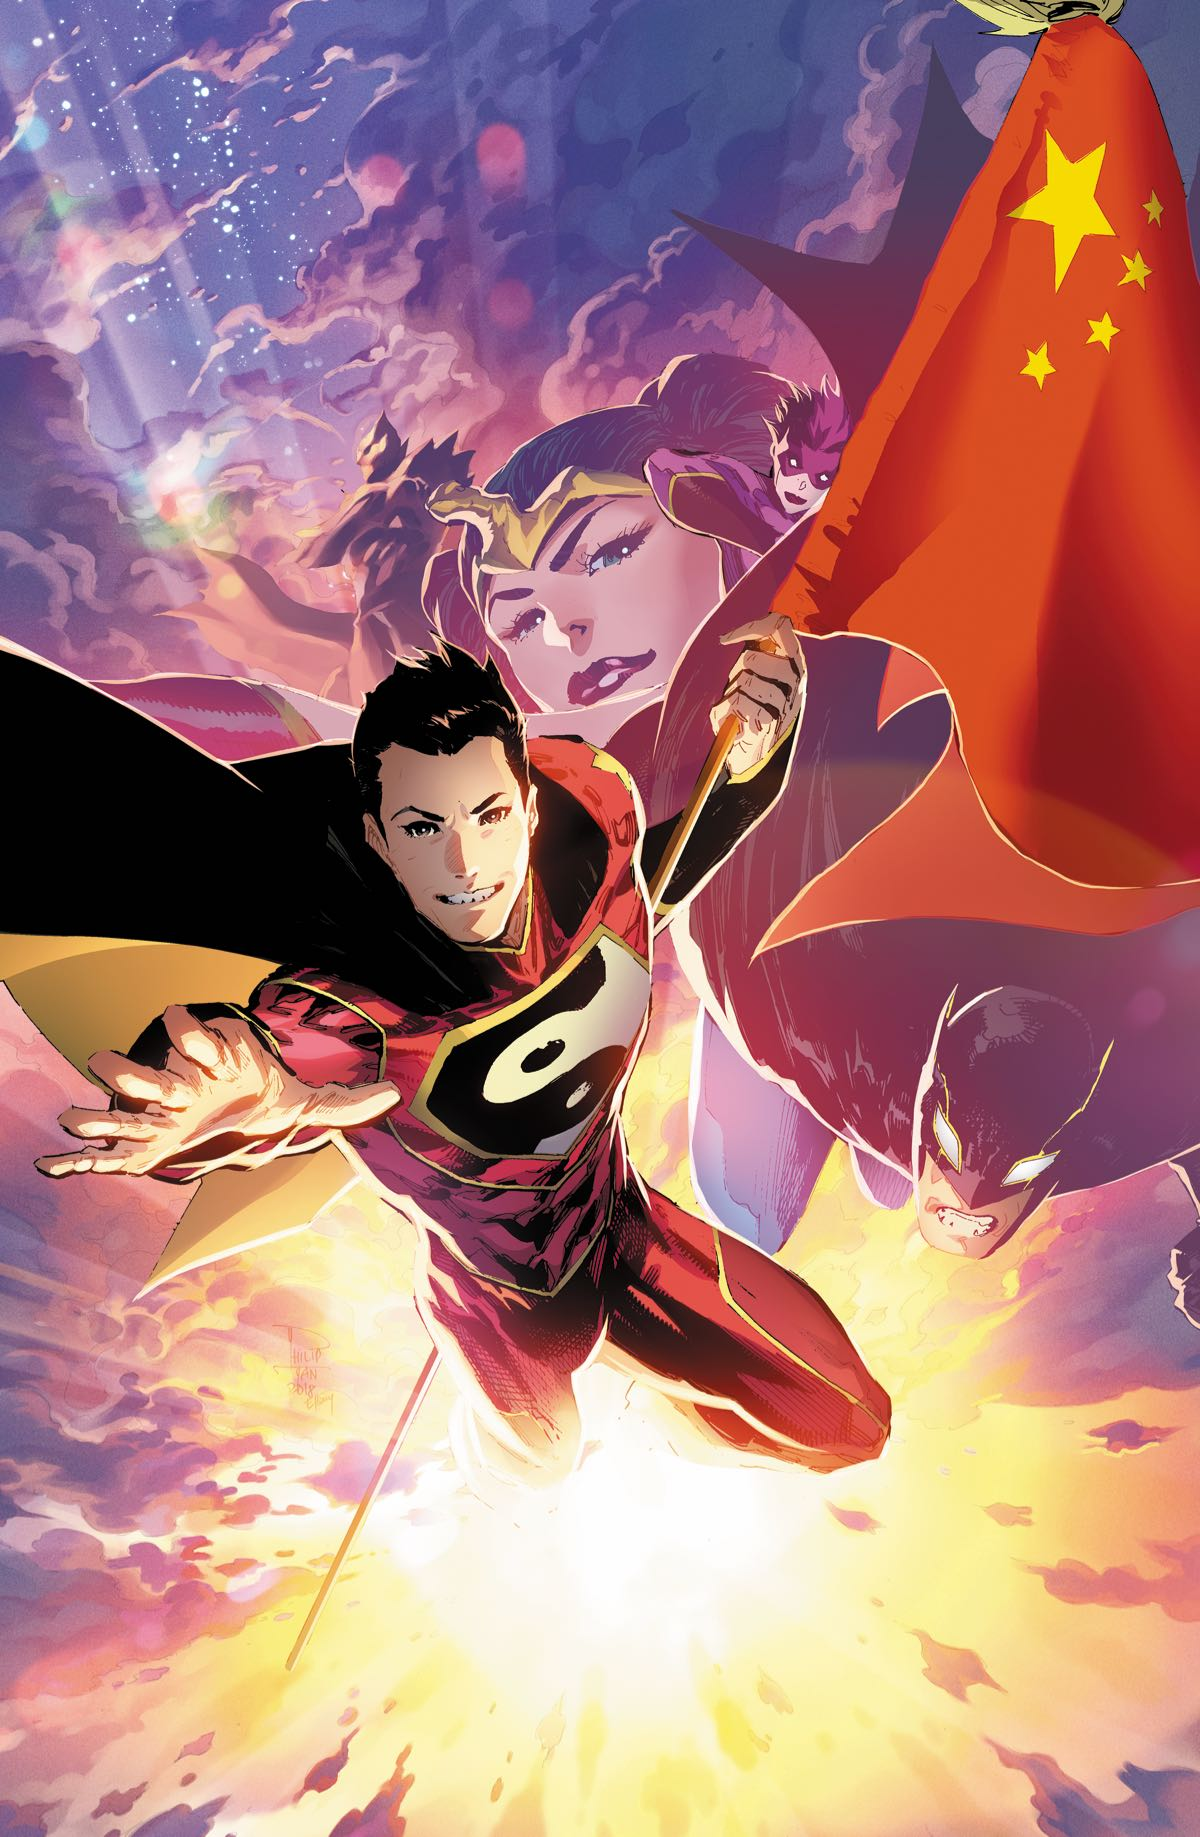 NEW SUPER-MAN AND THE JUSTICE LEAGUE OF CHINA #24